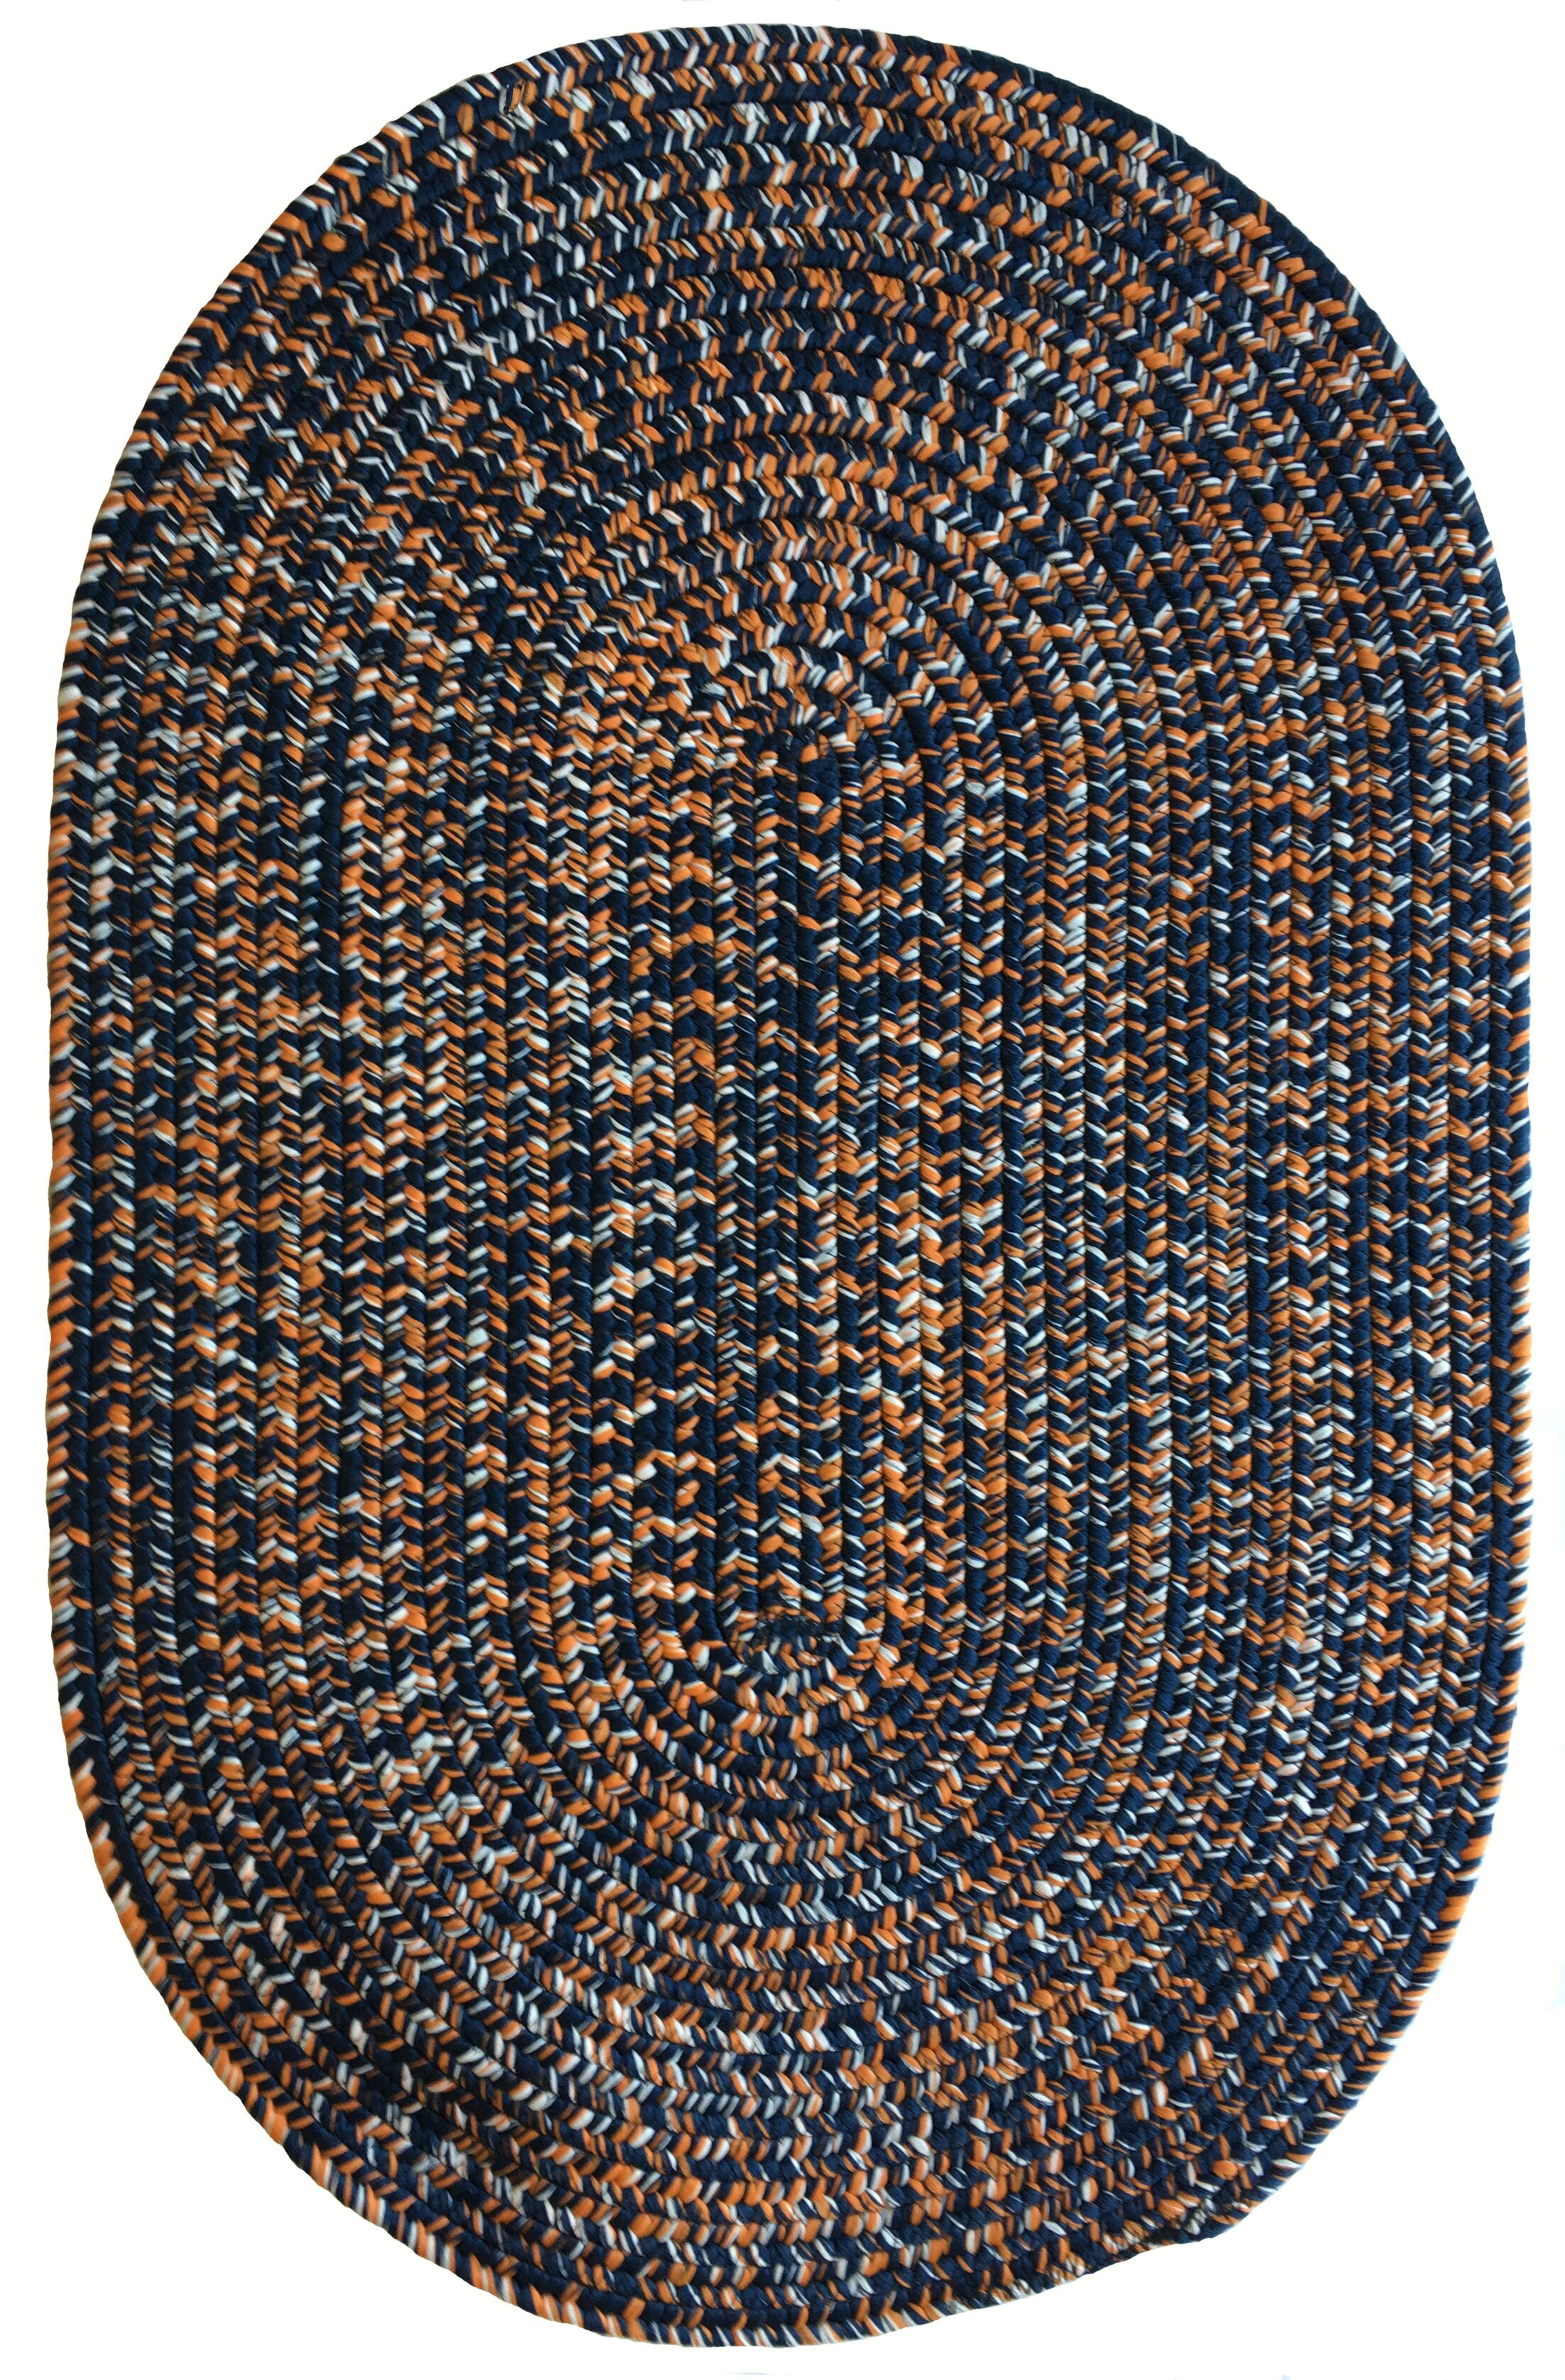 One-of-a-Kind Aukerman Hand-Braided Navy/Orange Indoor/Outdoor Area Rug Rug Size: Oval 2' x 8'